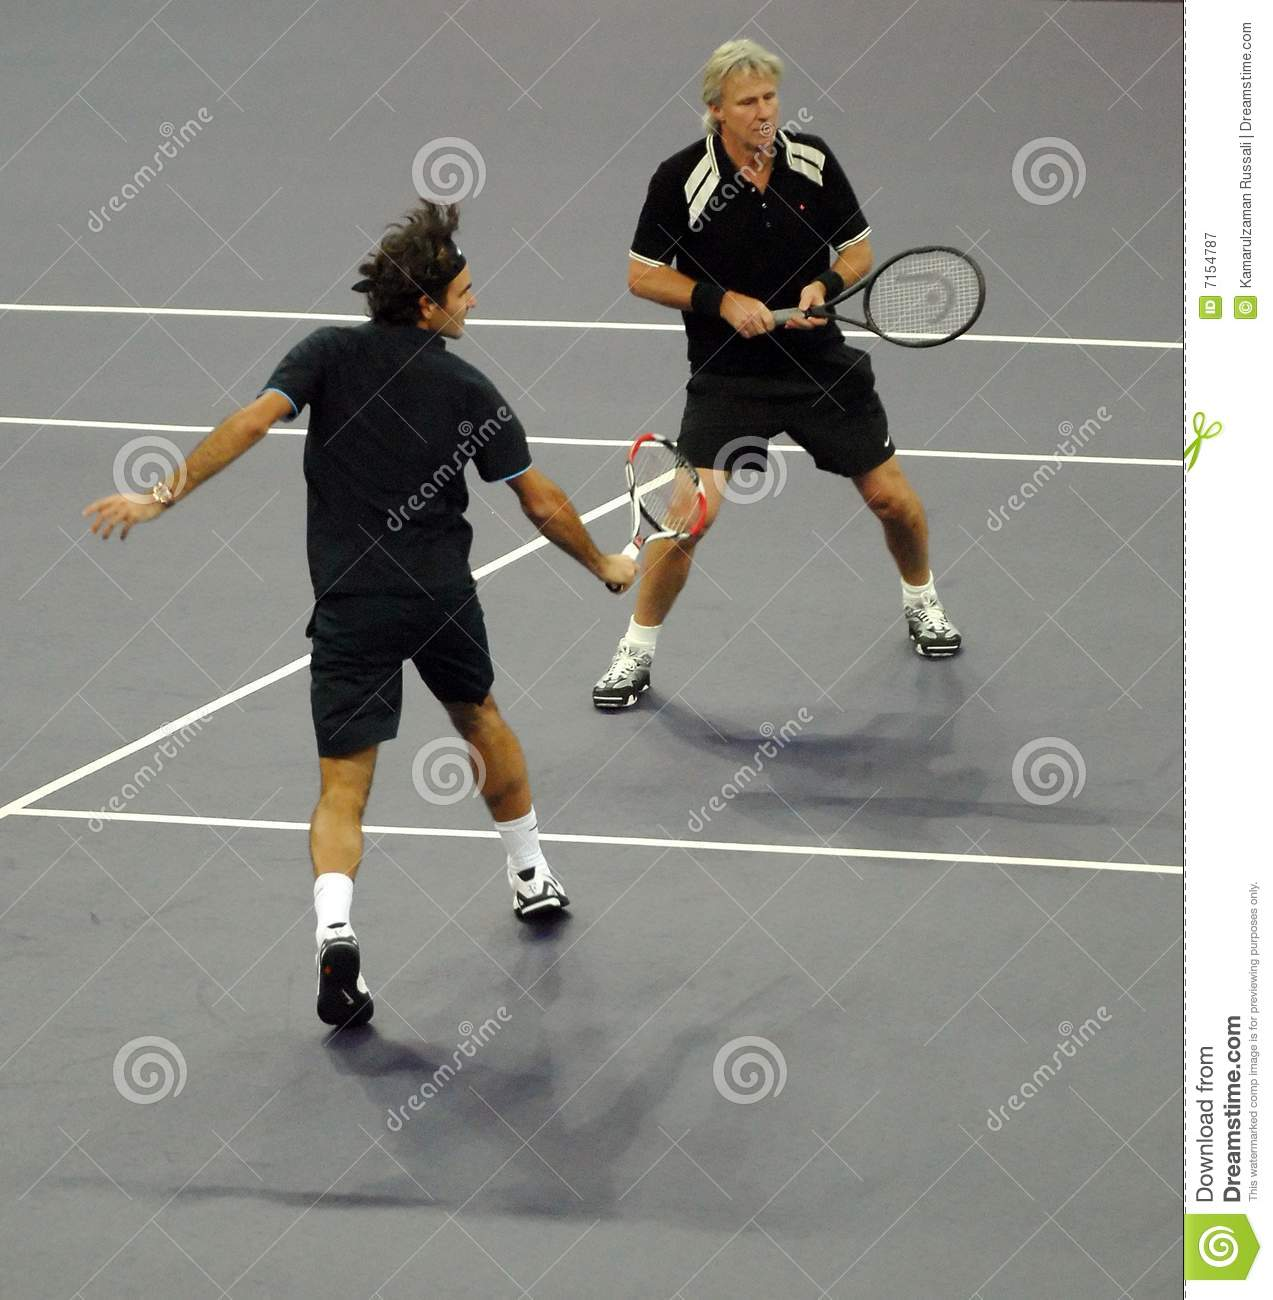 Roger Federer and Bjorn Borg in actions